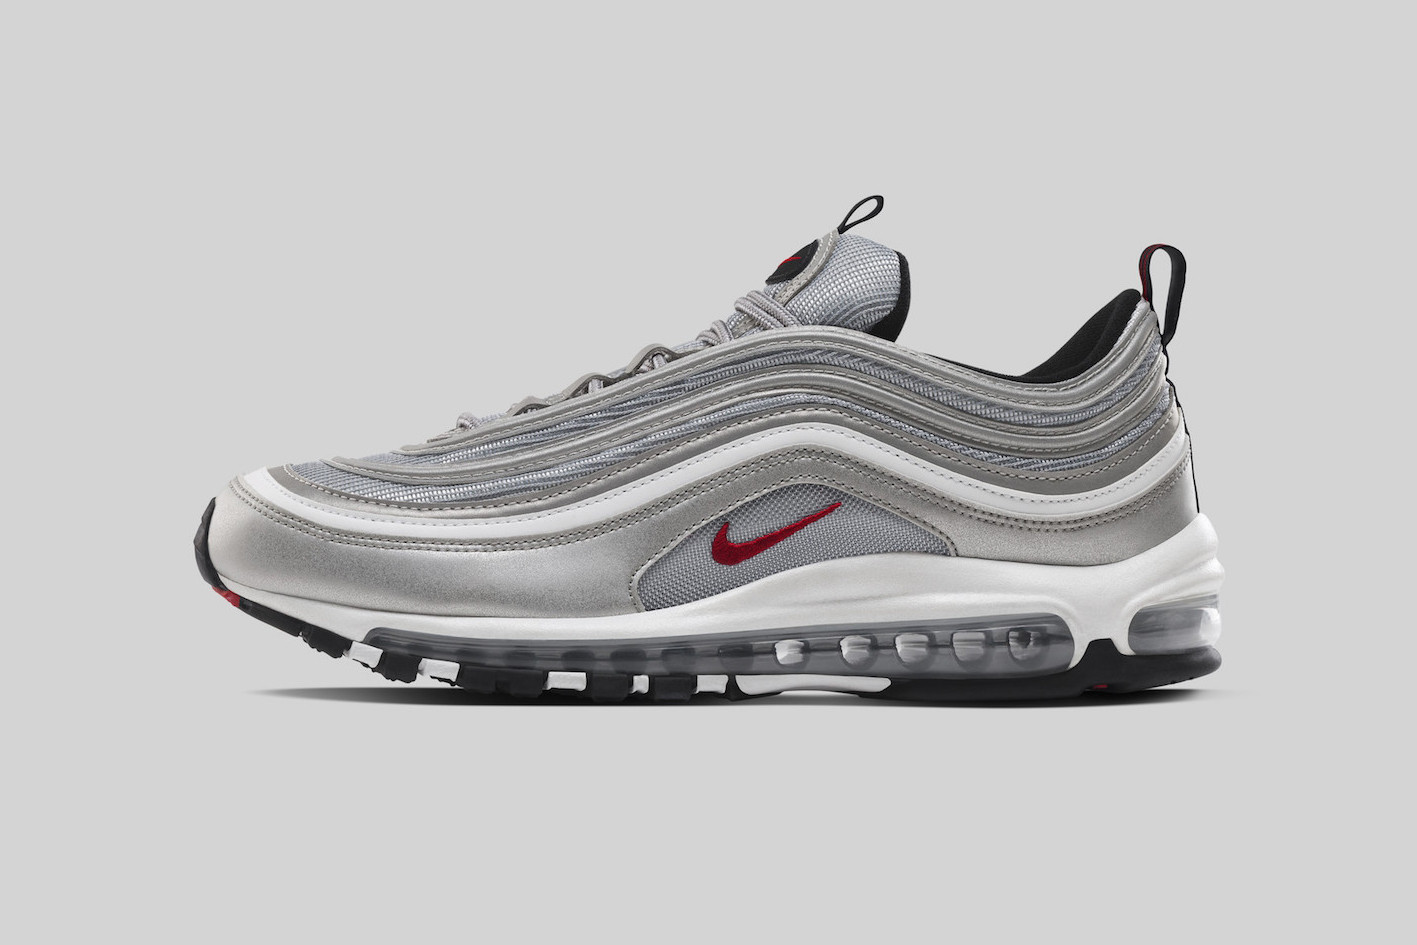 Nike Air Max 97 Silver Special Launch